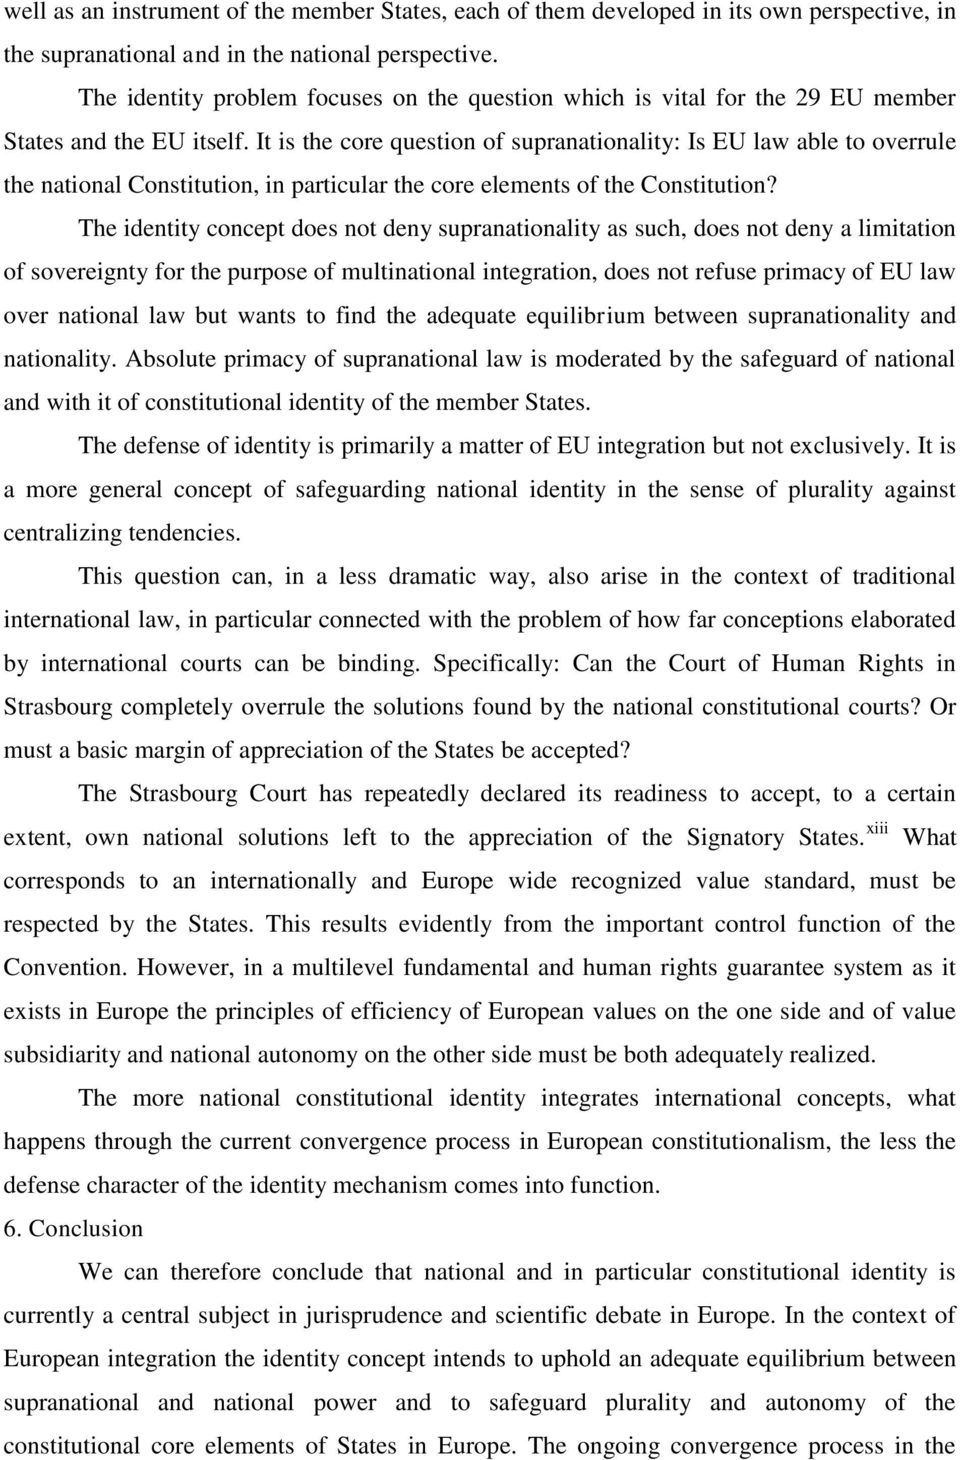 It is the core question of supranationality: Is EU law able to overrule the national Constitution, in particular the core elements of the Constitution?